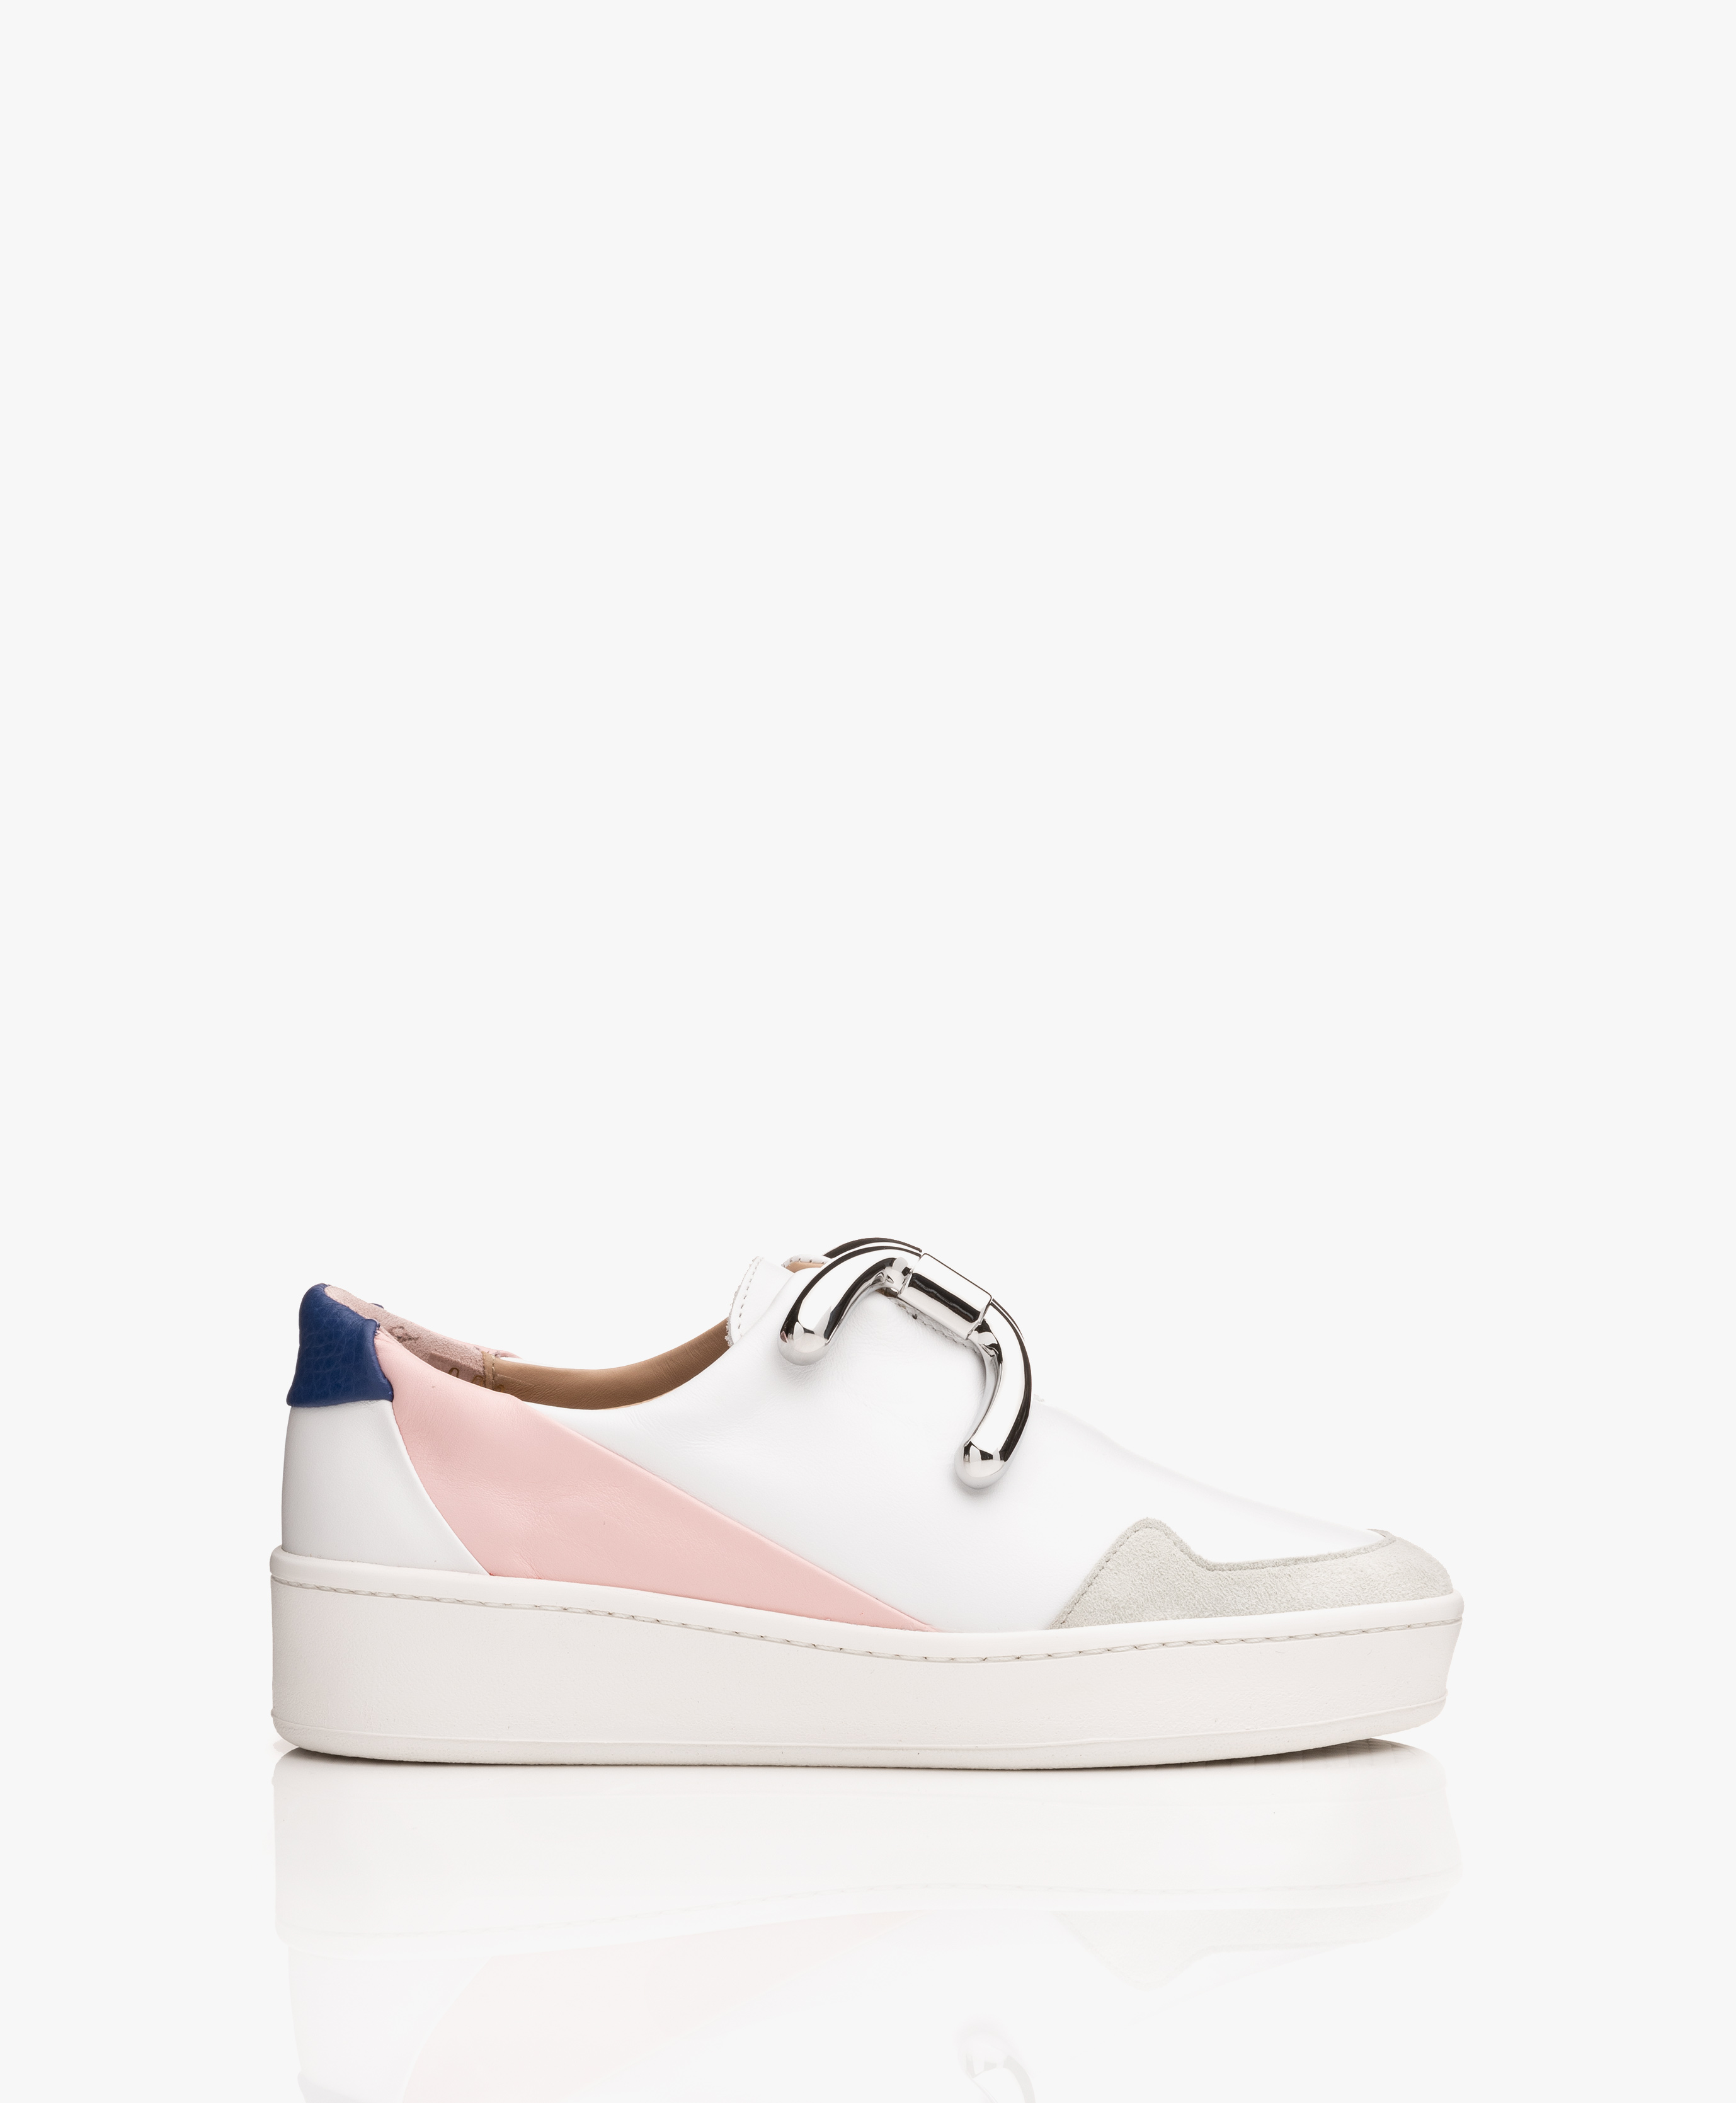 Immagine di An Hour And A Shower Sneakers Knot Camp Slip on in White/Blue/Pink/Silver